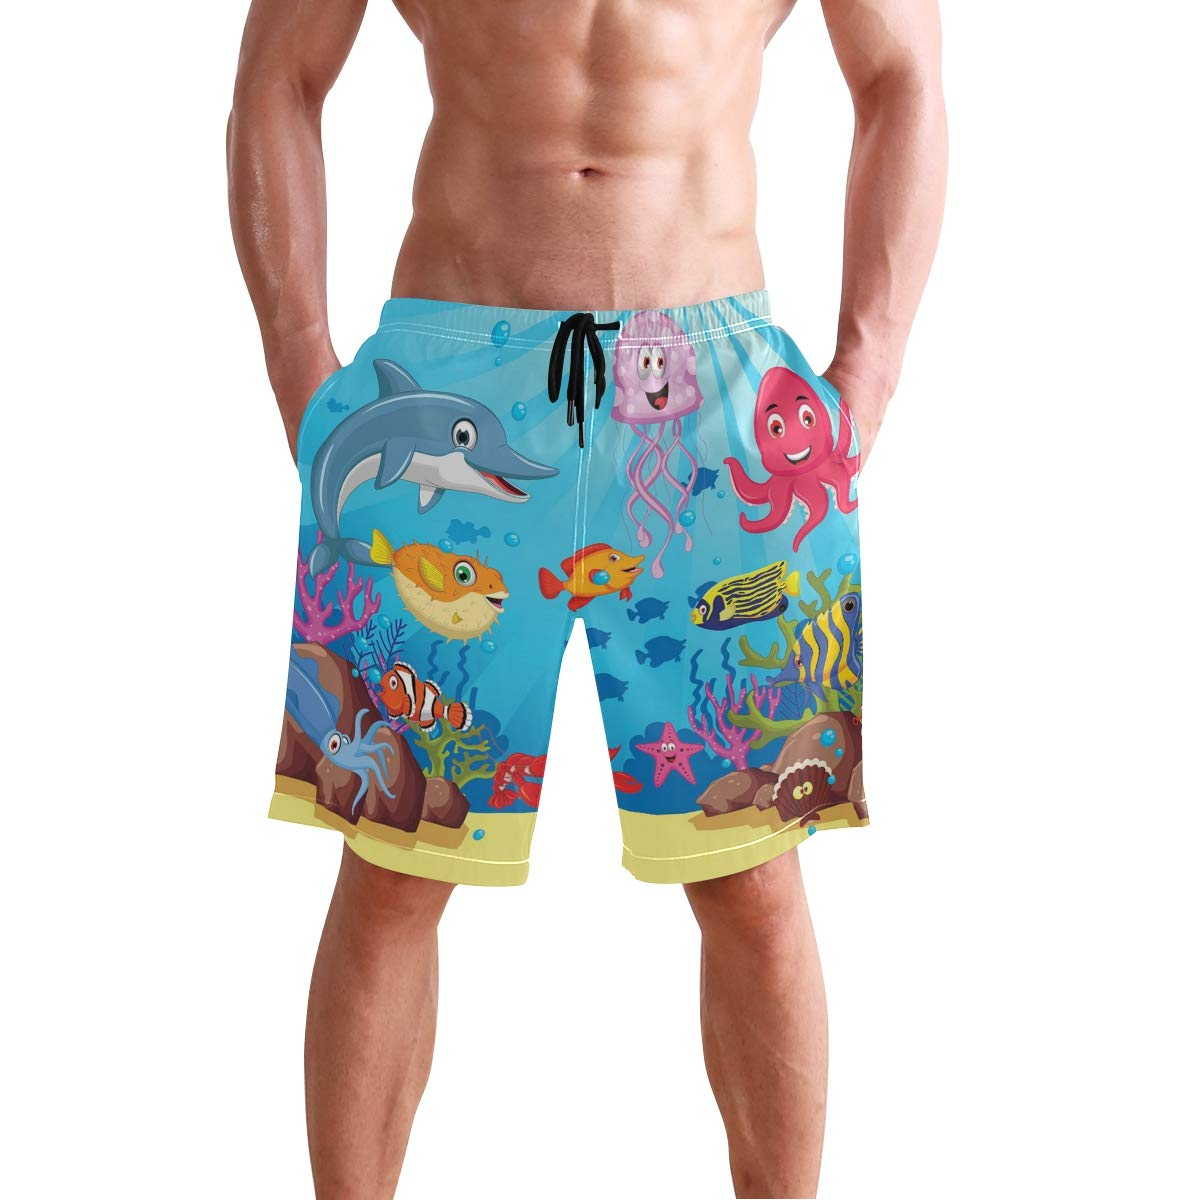 COVASA Mens Summer ShortsHand-Drawn Childish Motifs of Frogs Simple Doodle Art